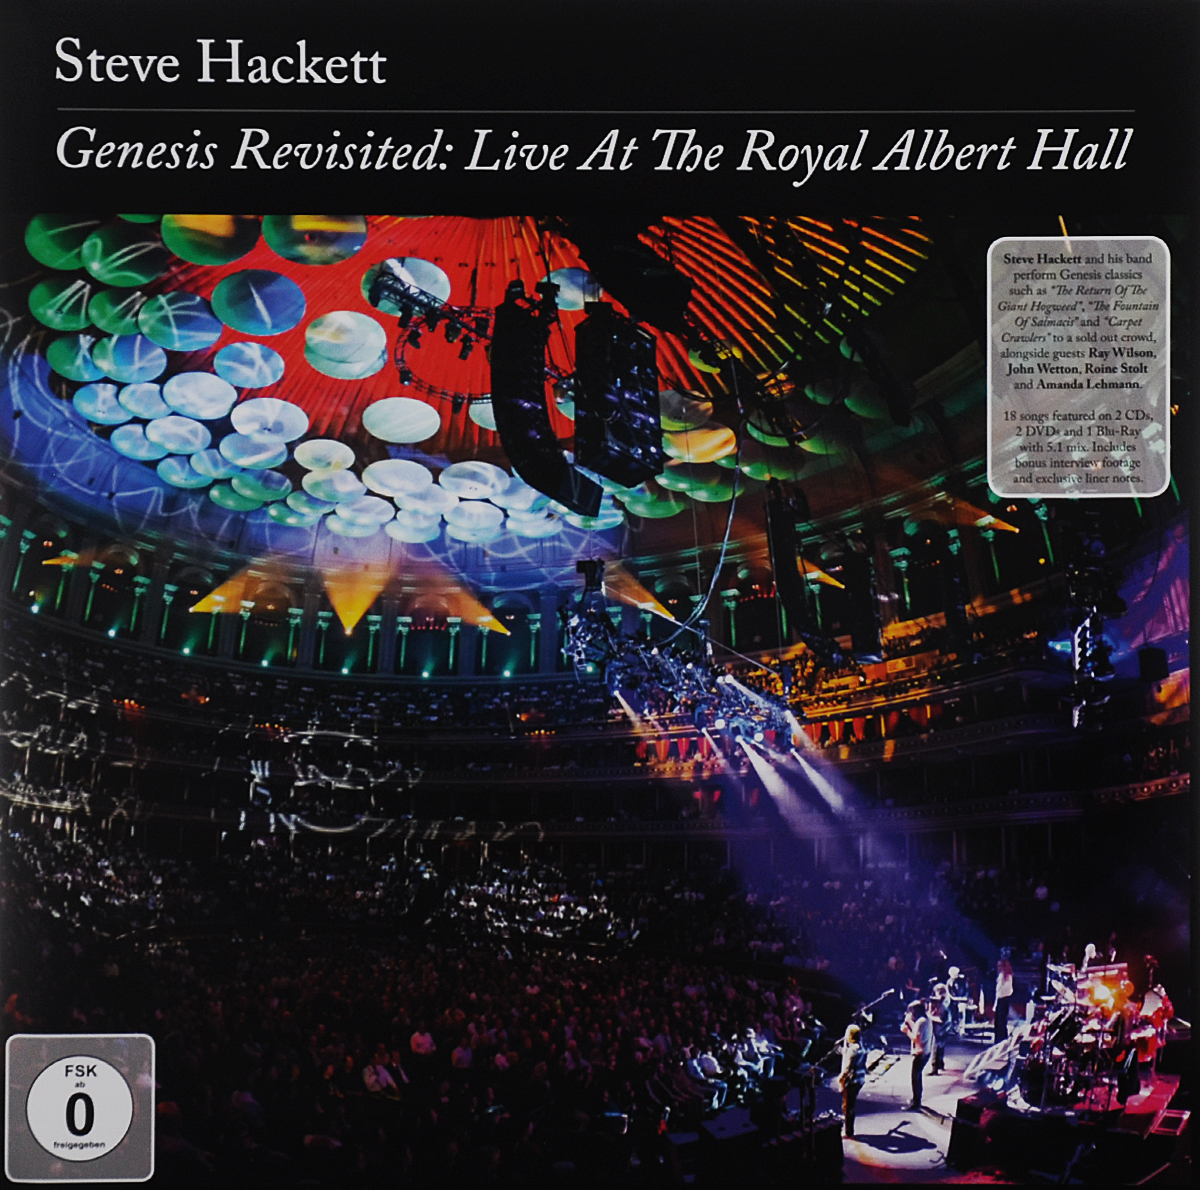 Стив Хэкетт Steve Hackett. Genesis Revisited. Live At The Royal Albert Hall (2 CD + 2 DVD + Blu-ray) europe live at shepherd s bush london blu ray